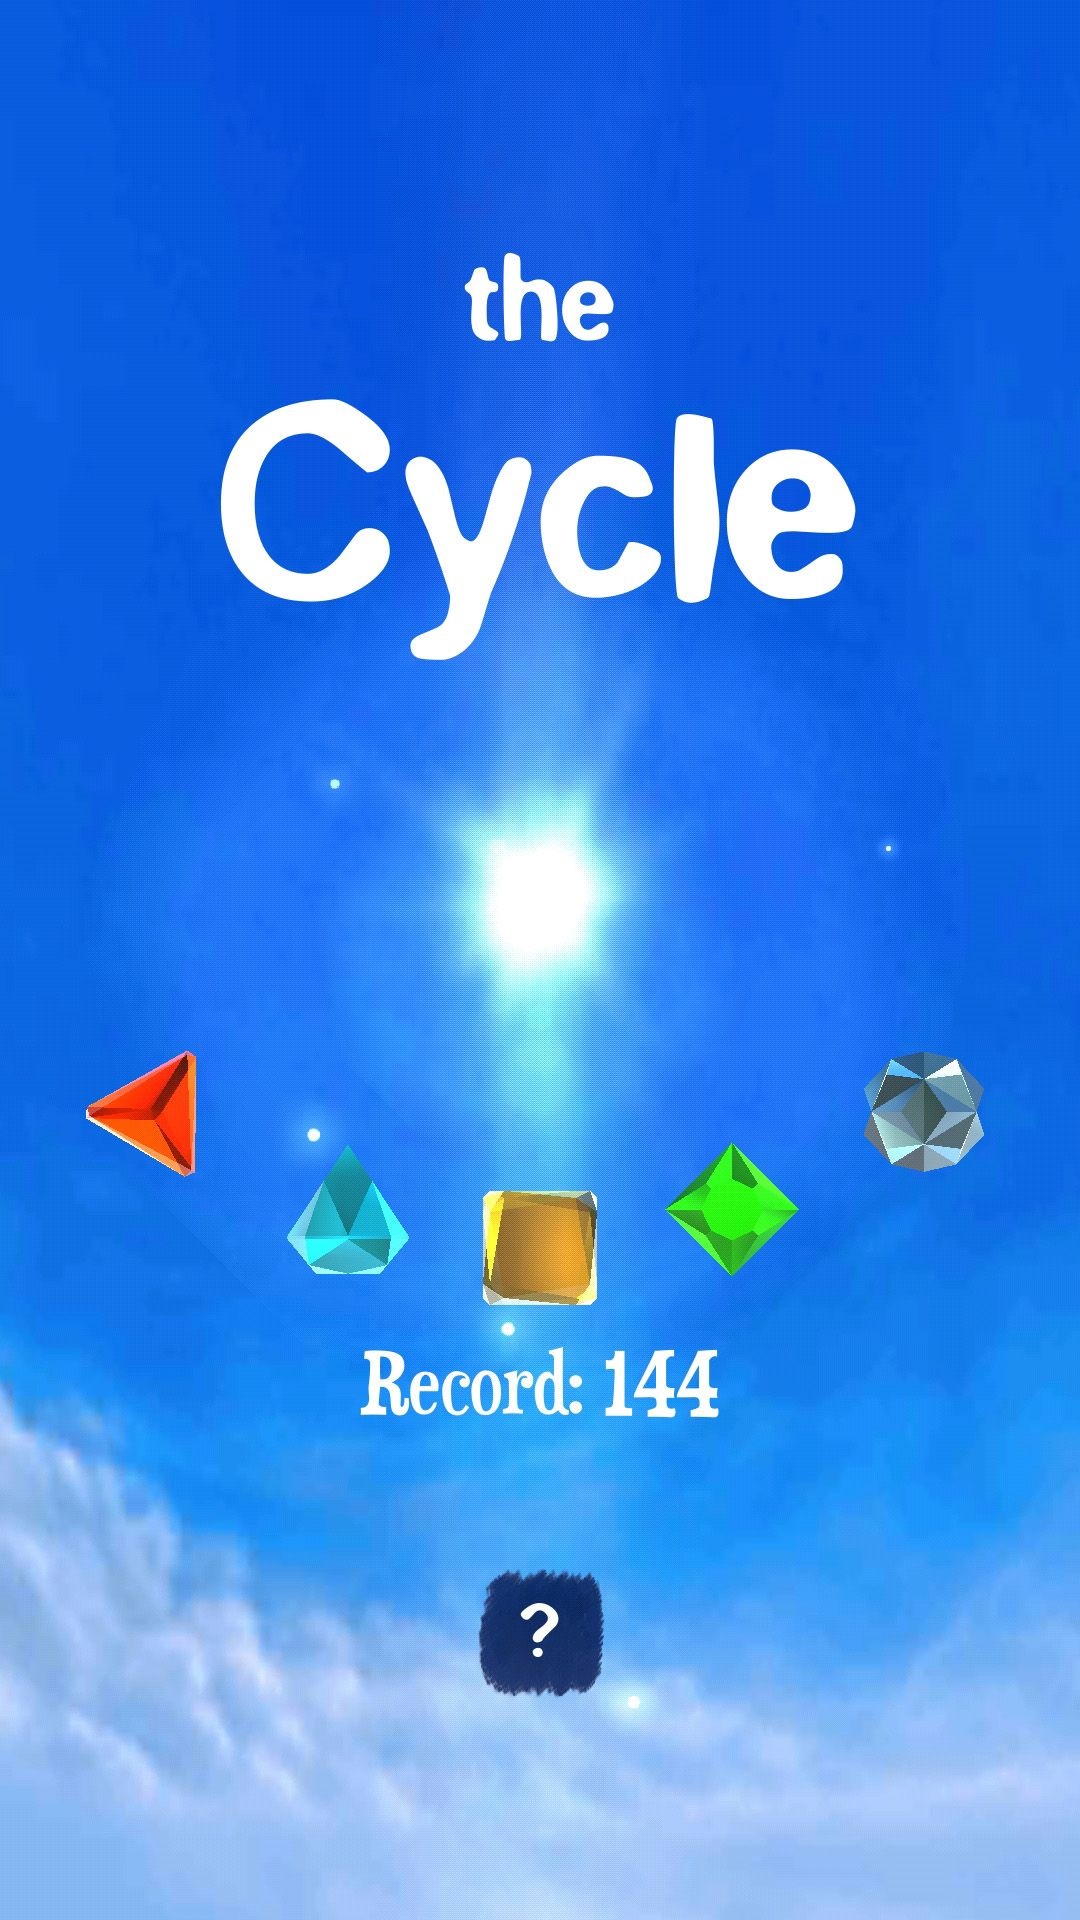 The Cycle - Unity Puzzle Game Template Screenshot 5